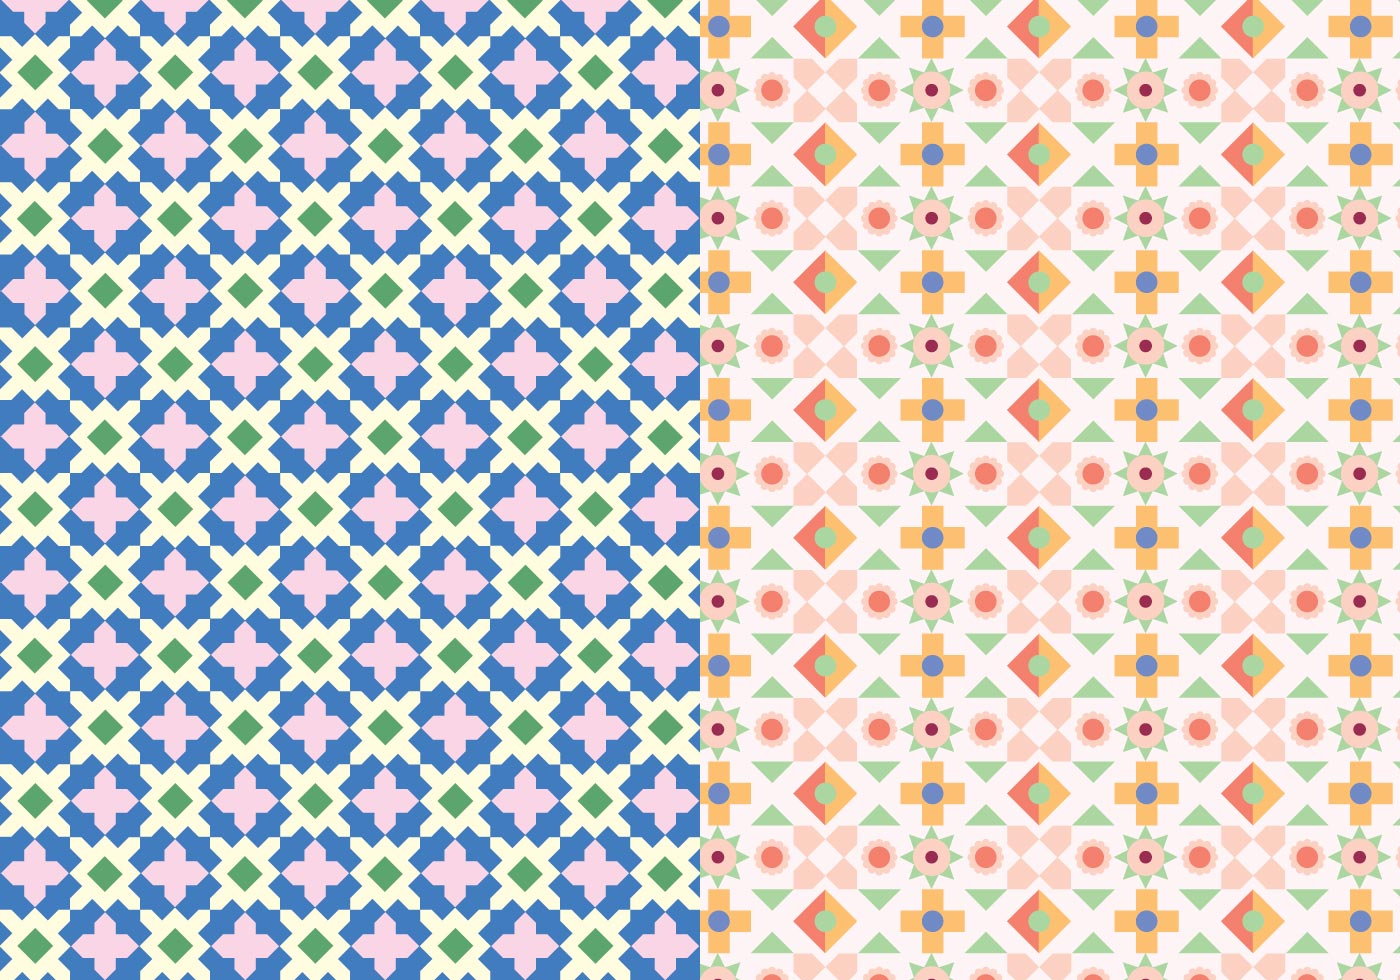 Decorative Mosaic Pattern Download Free Vector Art